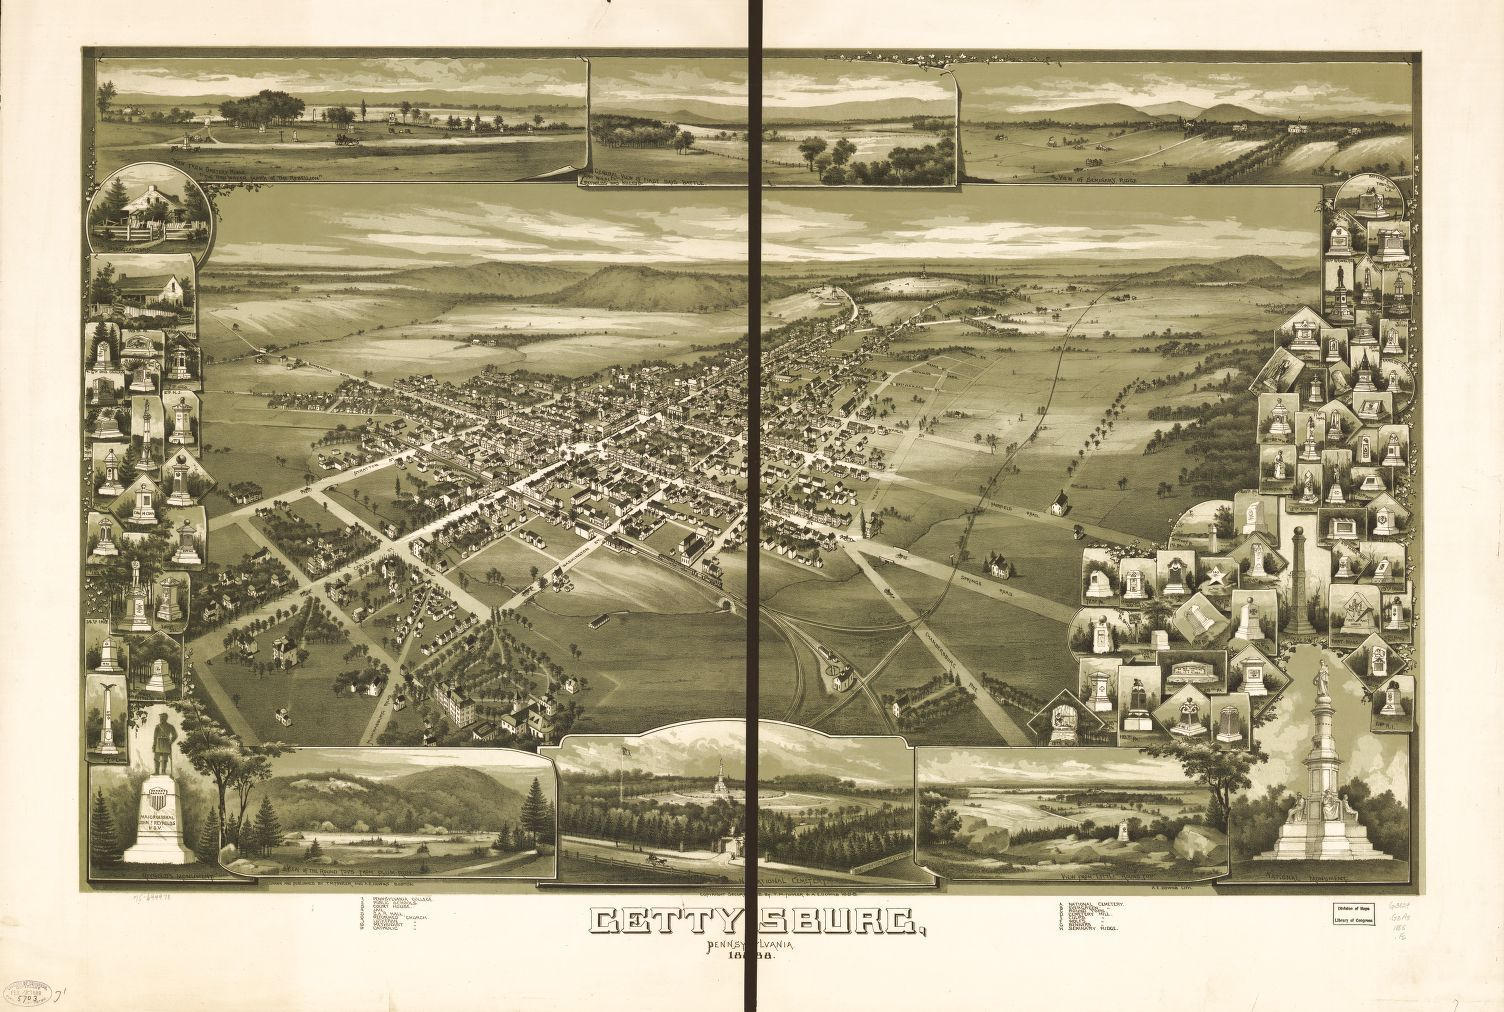 Gettysburg, Pennsylvania 1888. | Library of Congress. Man made features.